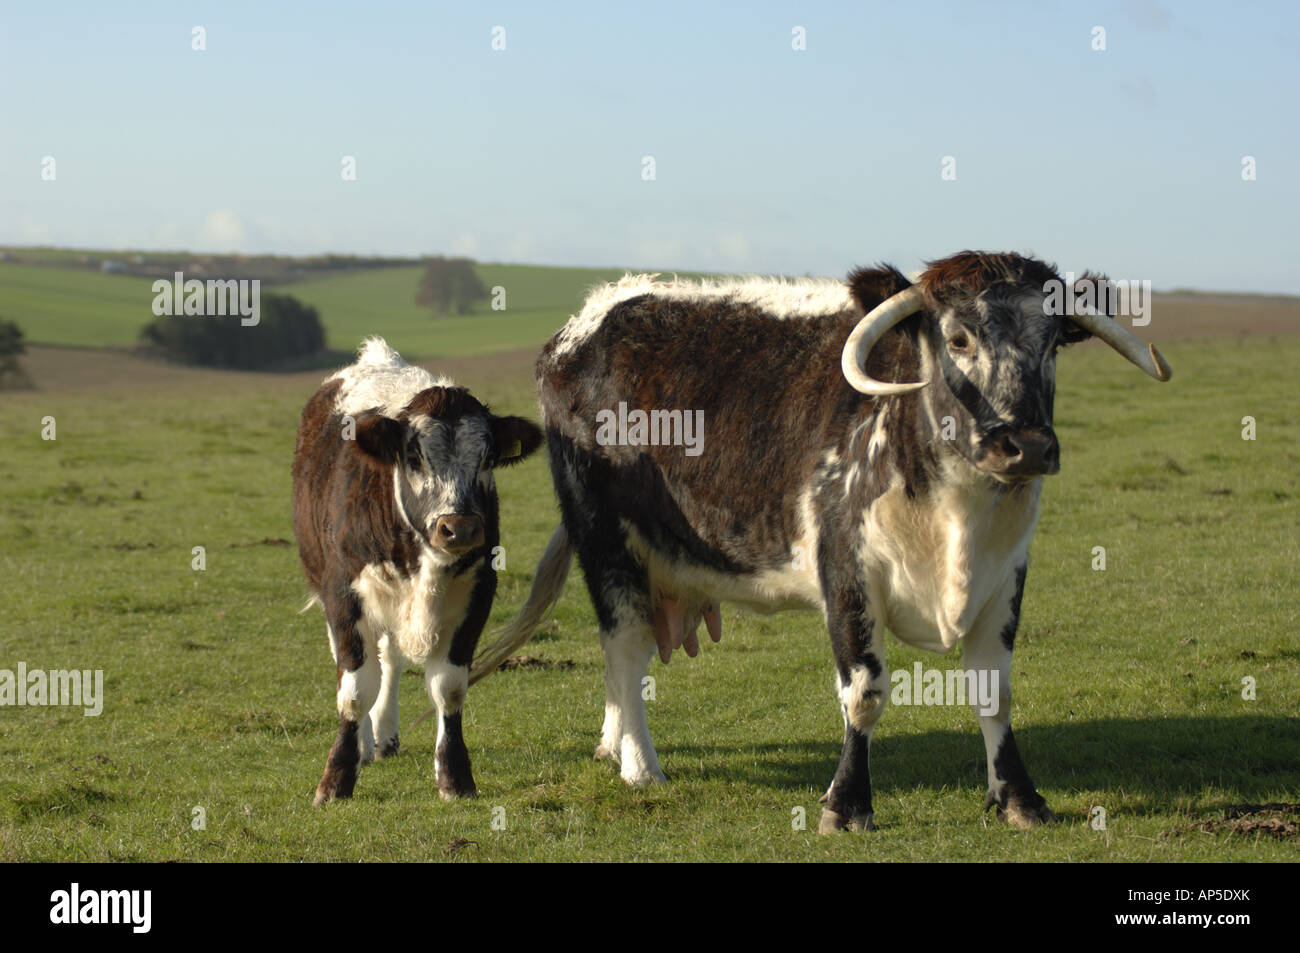 Longhorn Cattle at Parsonage Down National Nature Reserve Wiltshire England - Stock Image